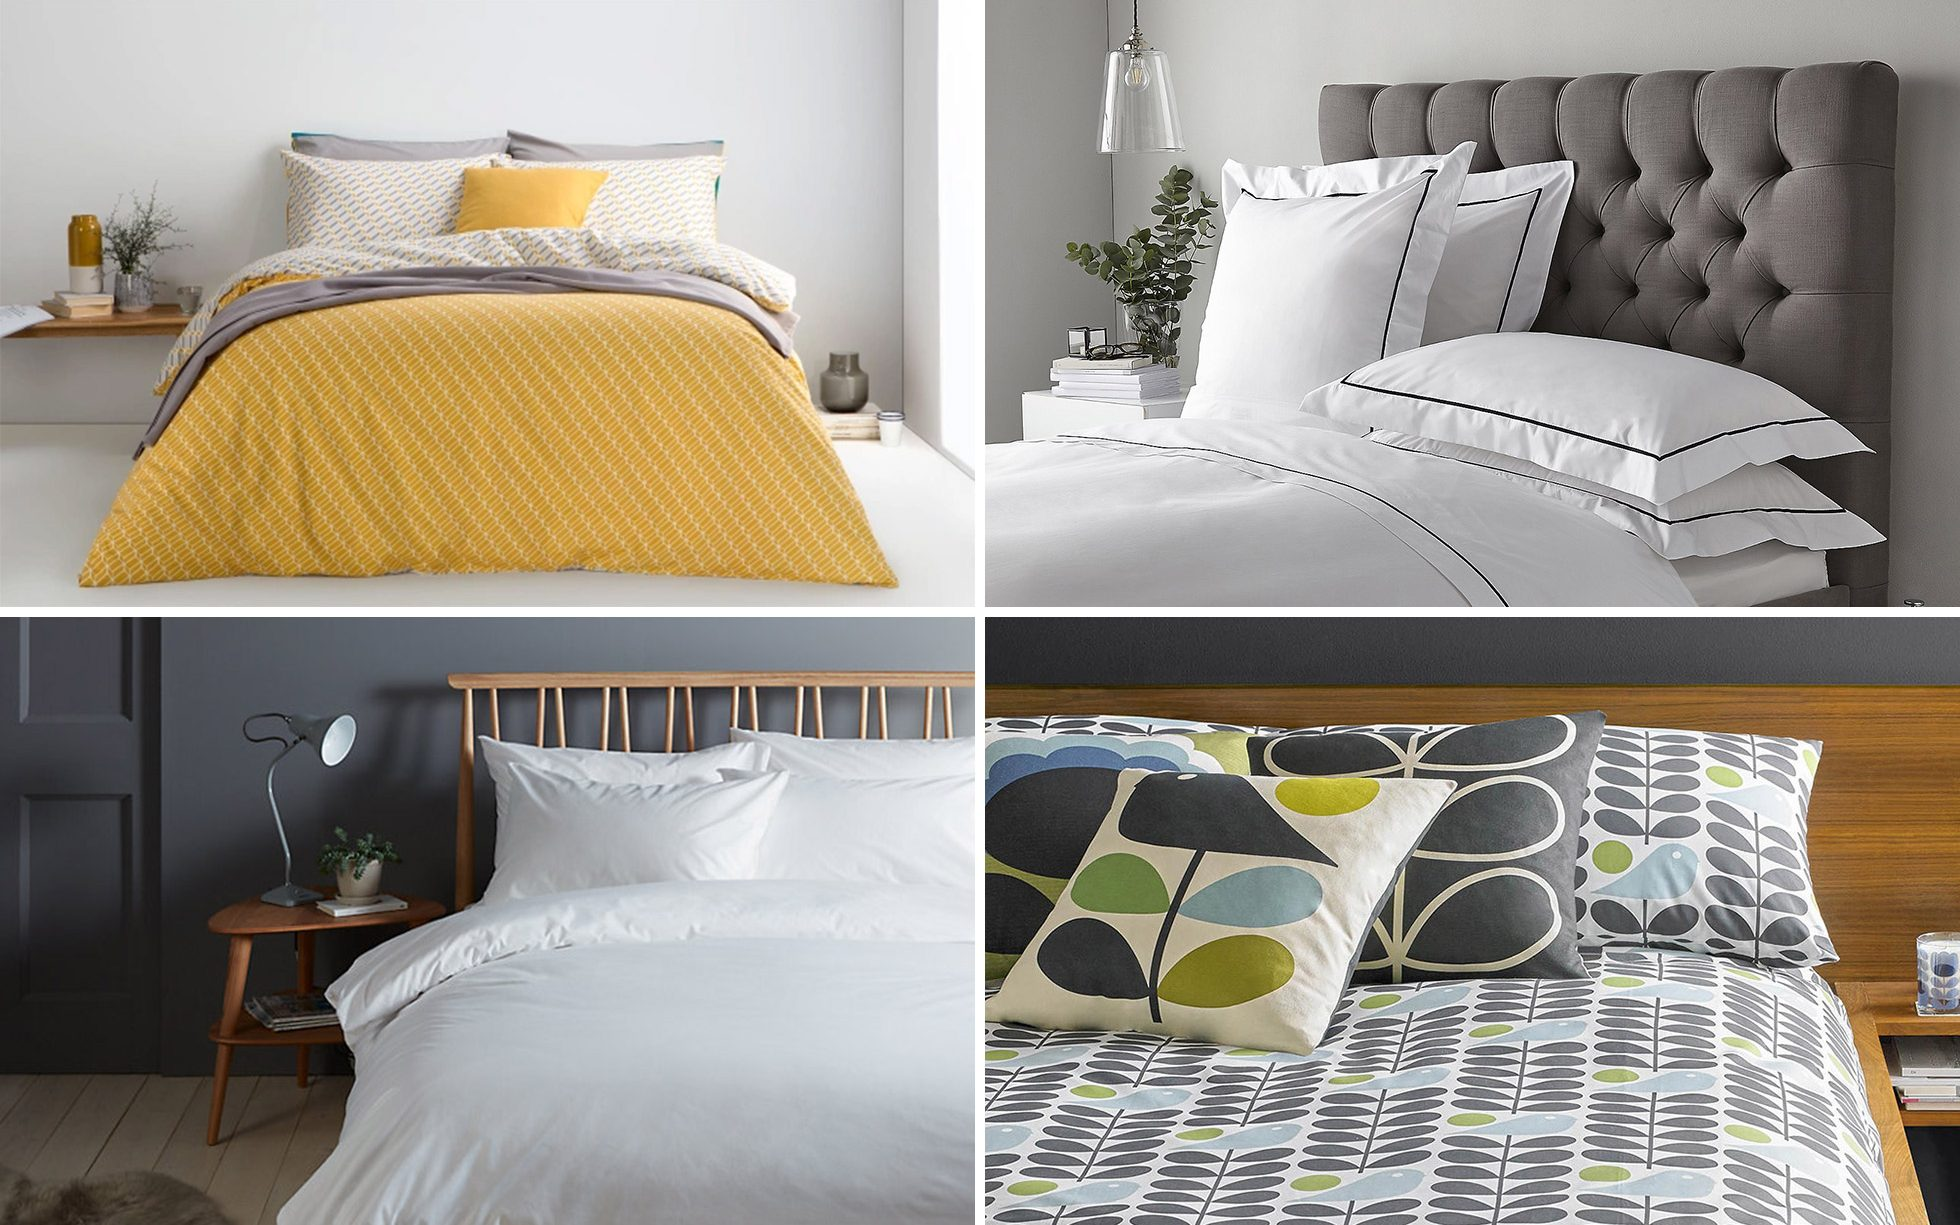 15 Of The Best Duvet Covers And Bedding Sets For A Stylish